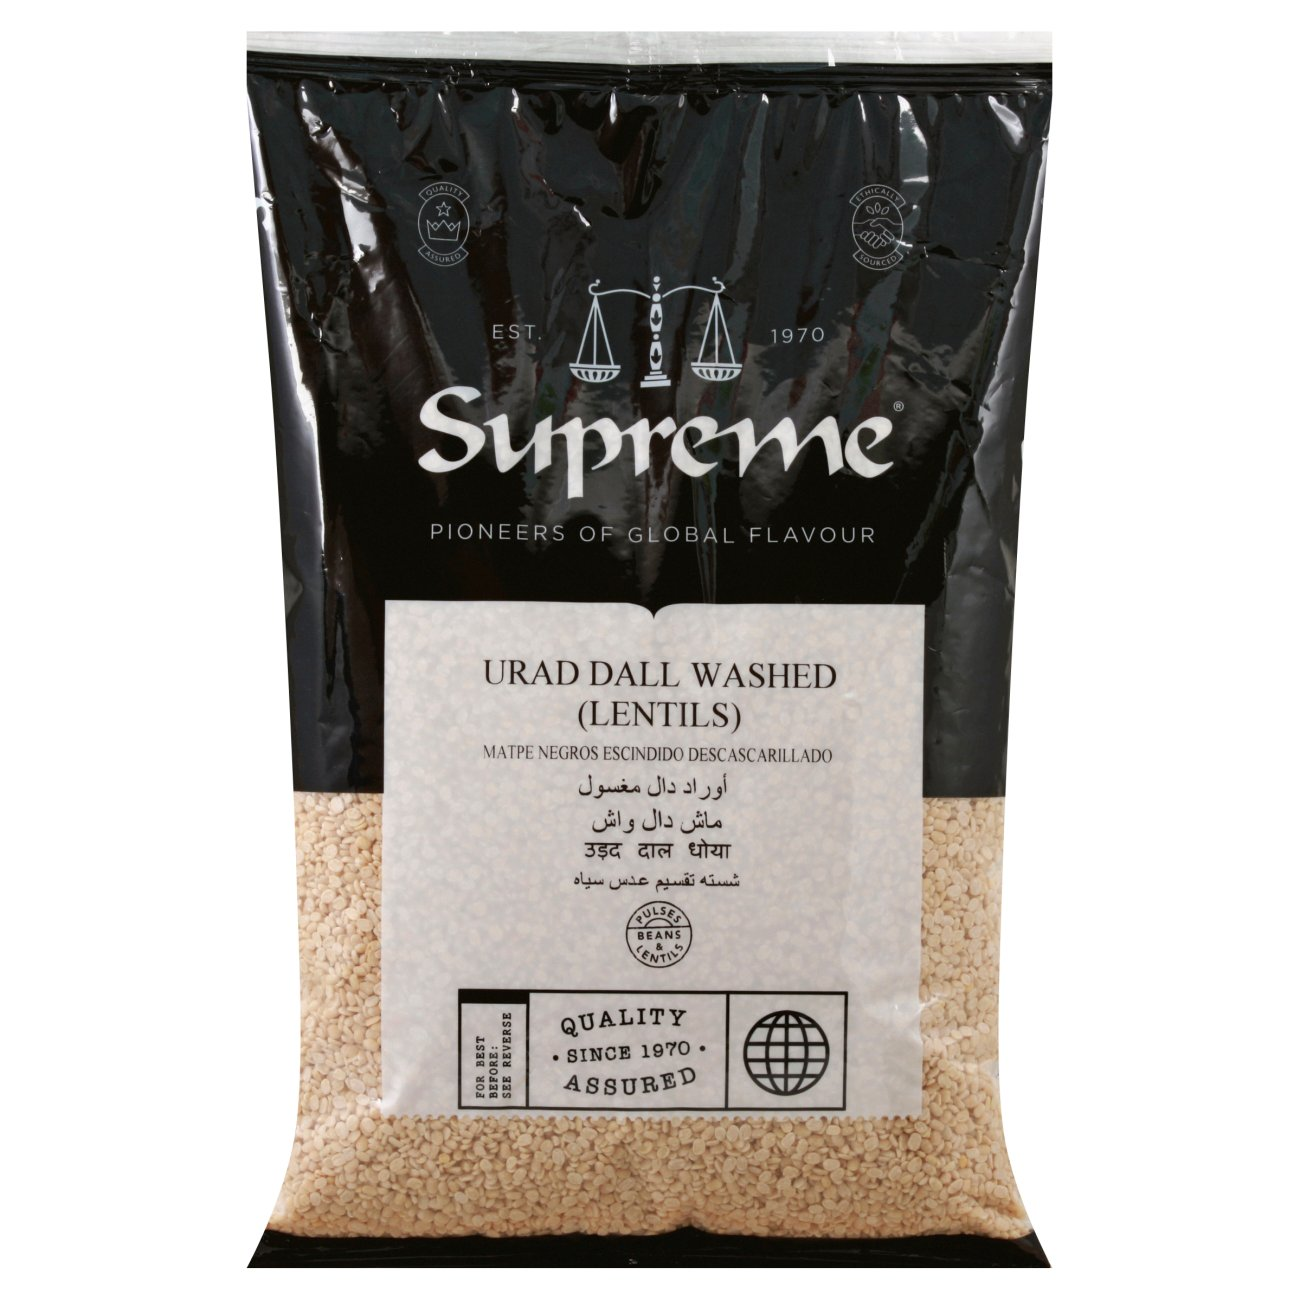 Supreme Urad Dal Washed Lentils Shop Beans Legumes At H E B